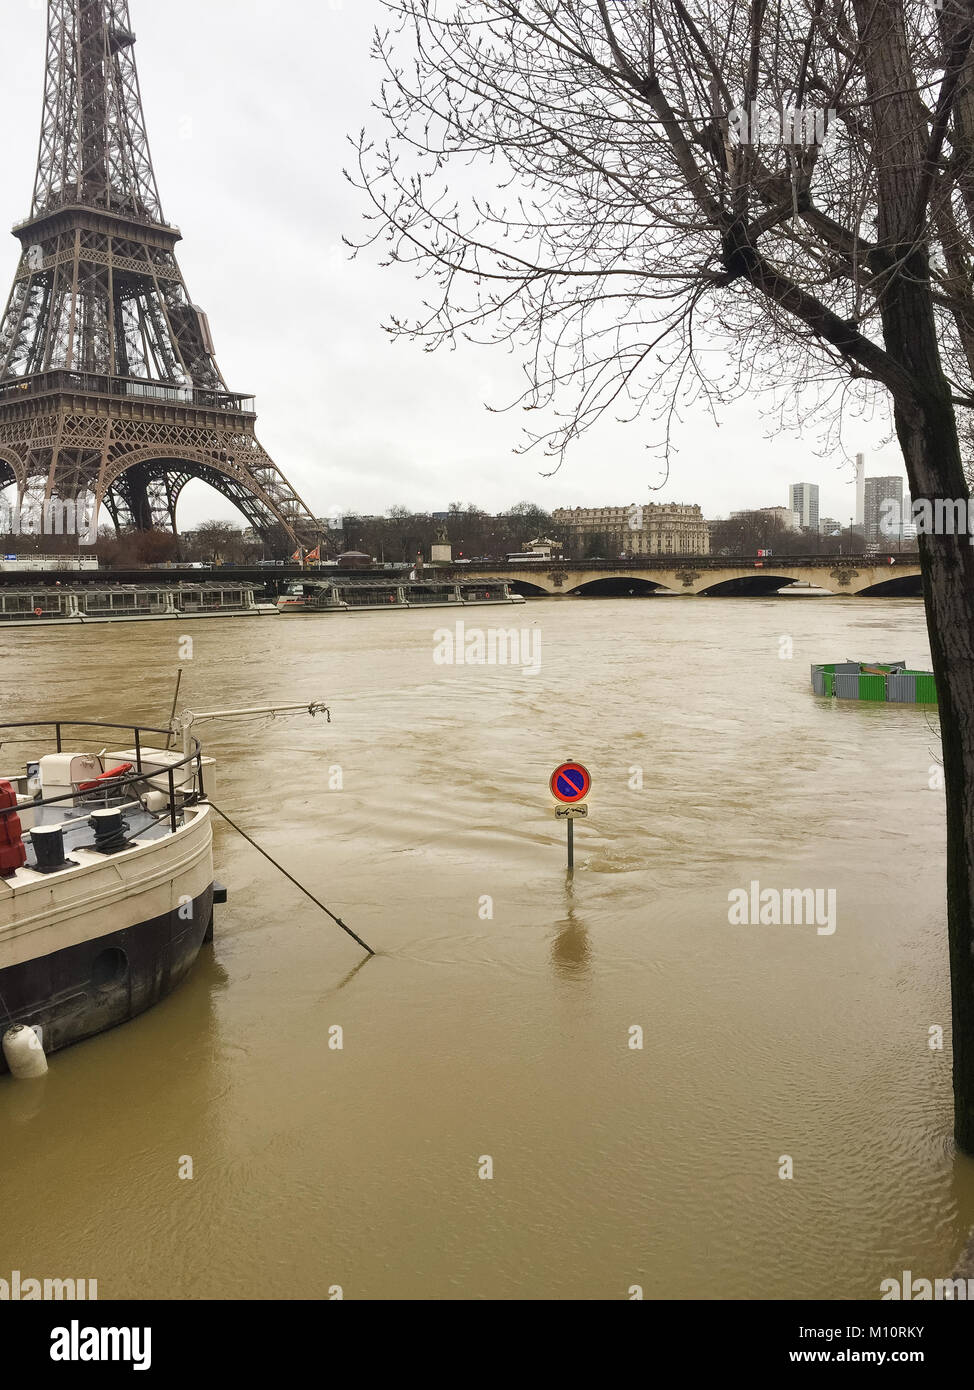 Paris France - 25th January 2018 : Flood water keeps rising in Paris, River Seine in flood January 25 2018 - Stock Image